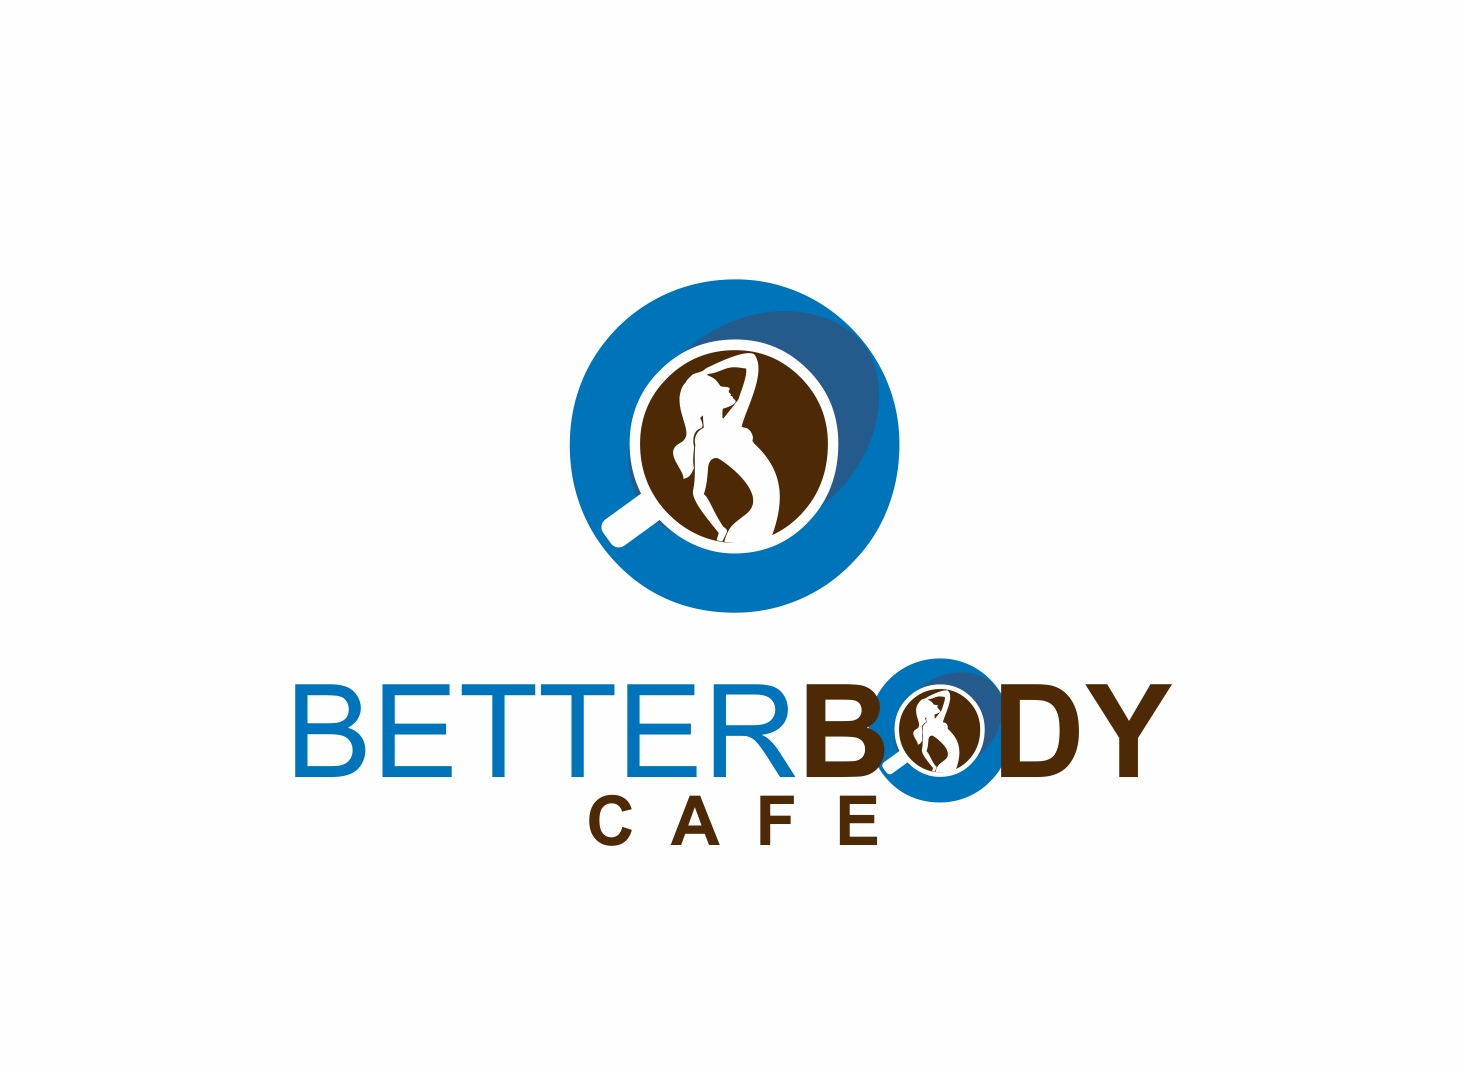 Logo Design by Zdravko Krulj - Entry No. 69 in the Logo Design Contest New Logo Design for Better Body Cafe.